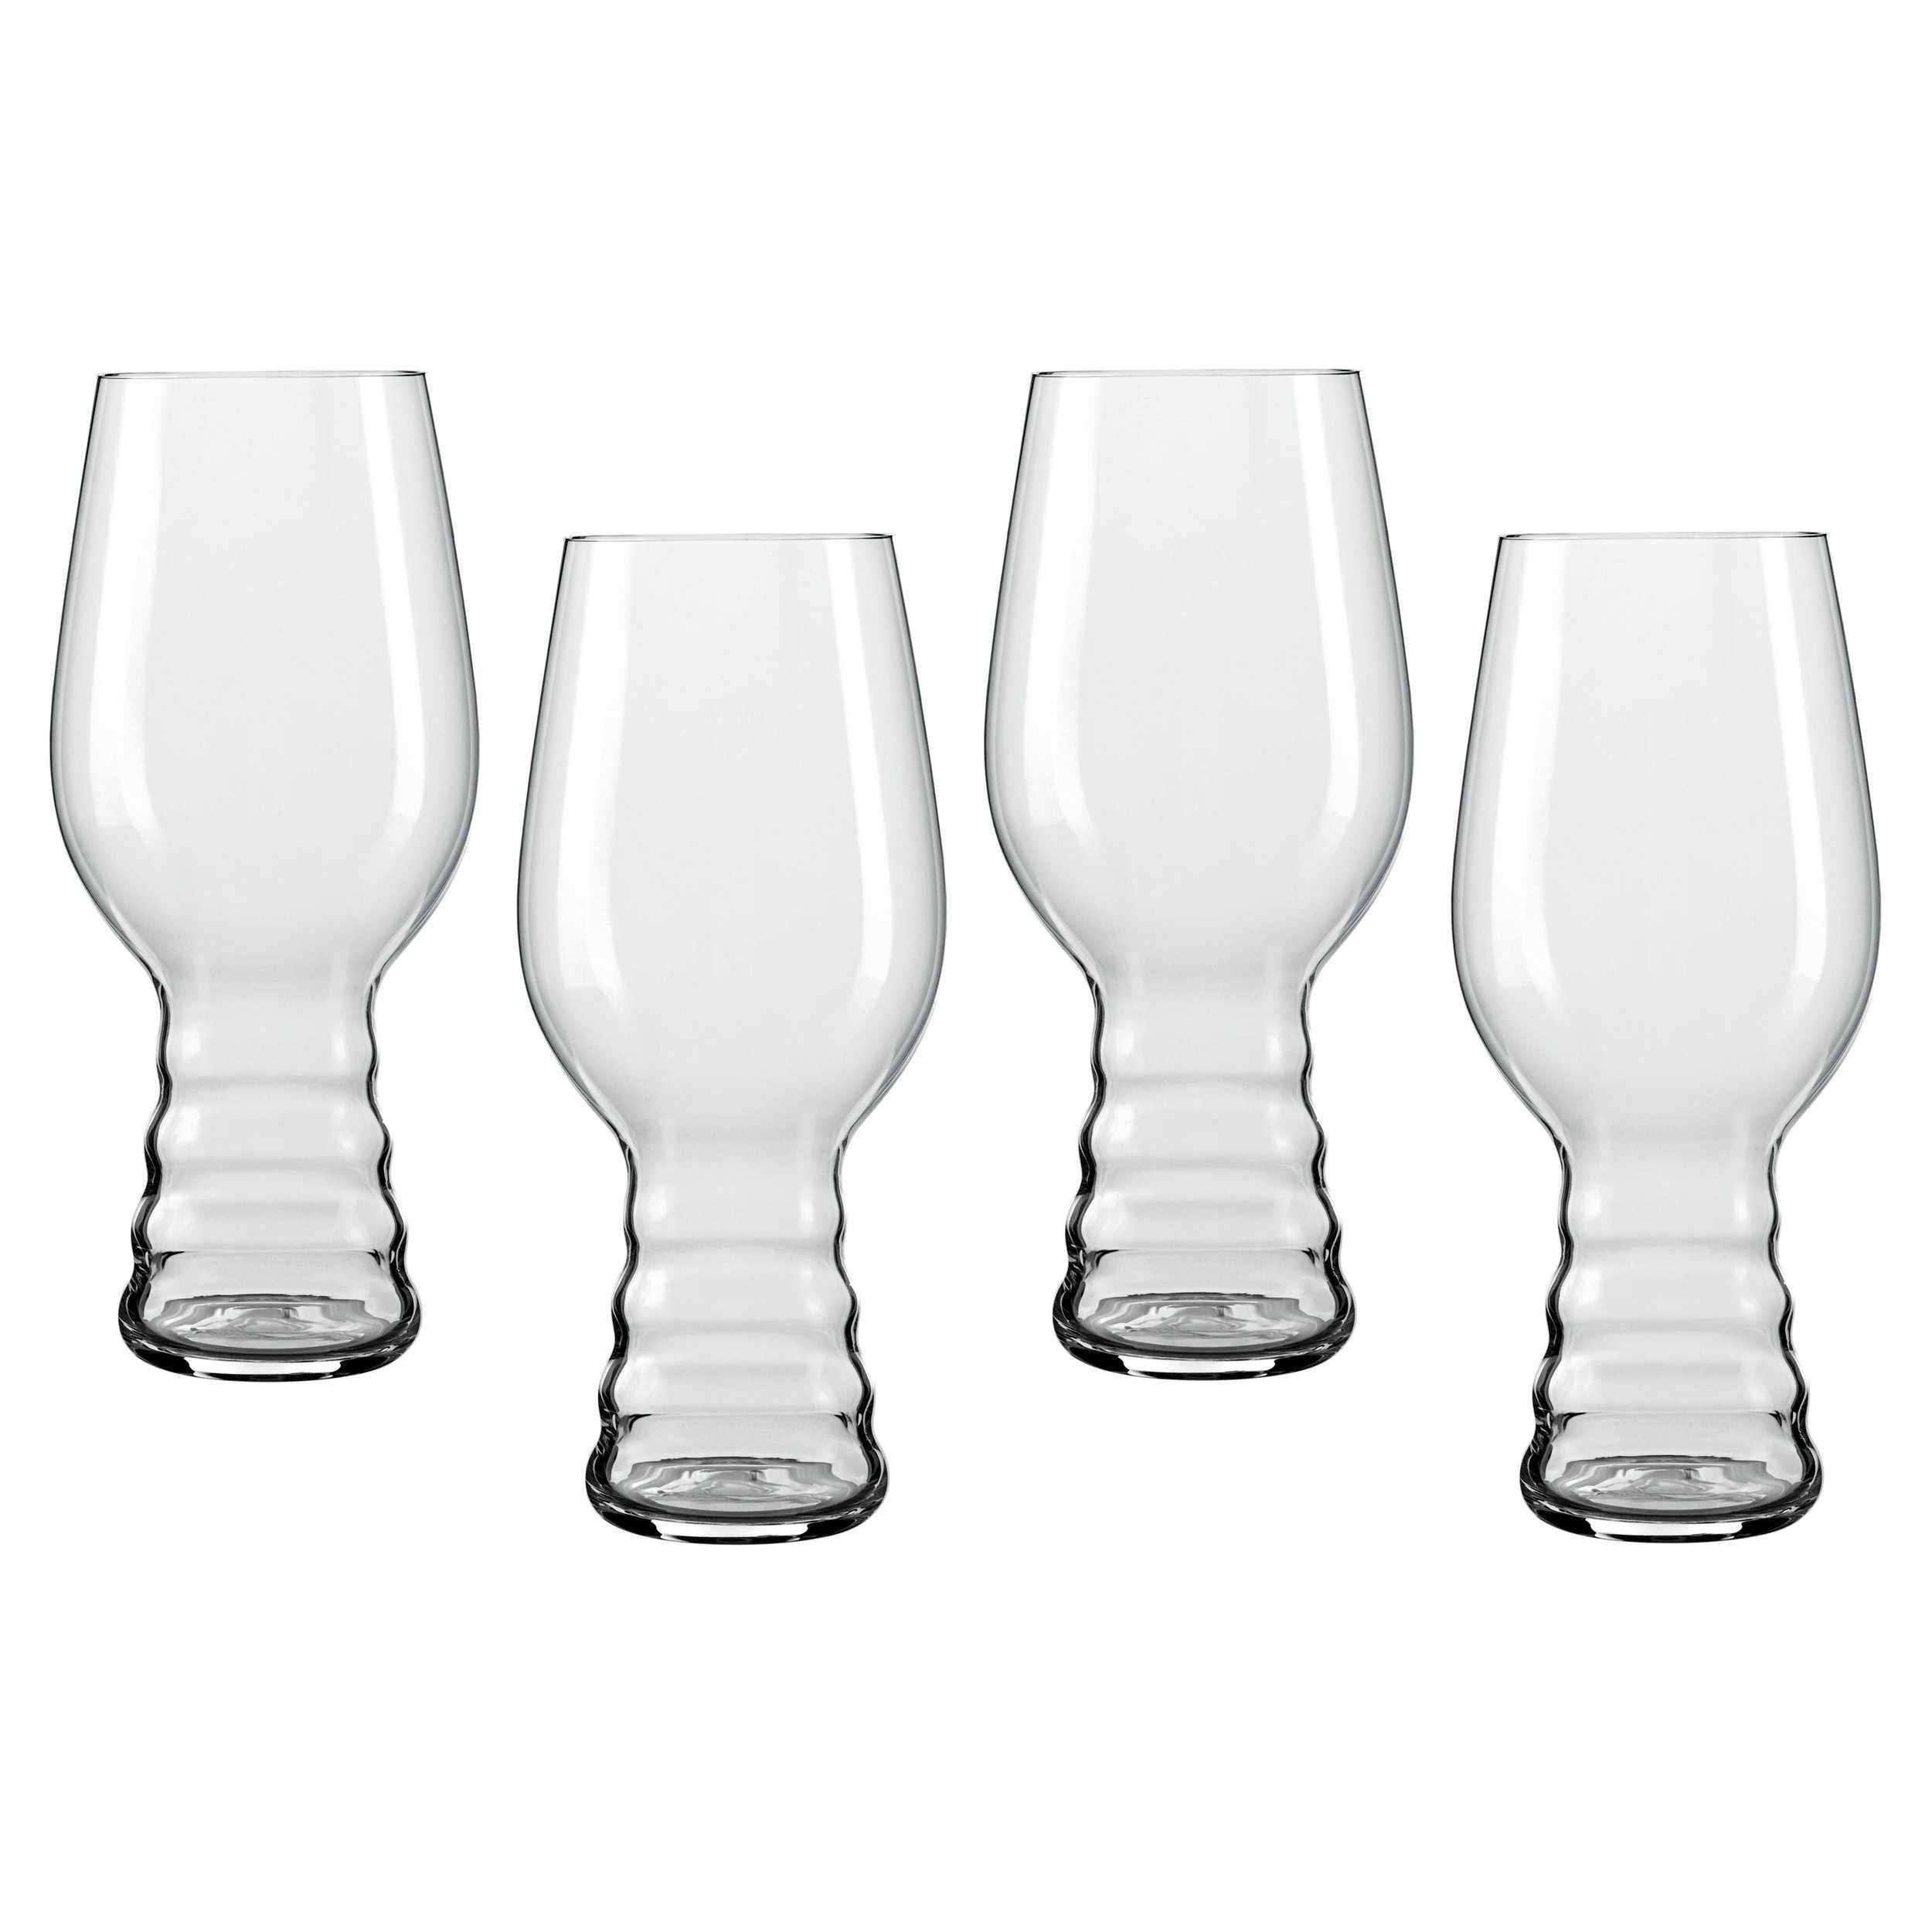 Spiegelau IPA Glasses | Set of 4